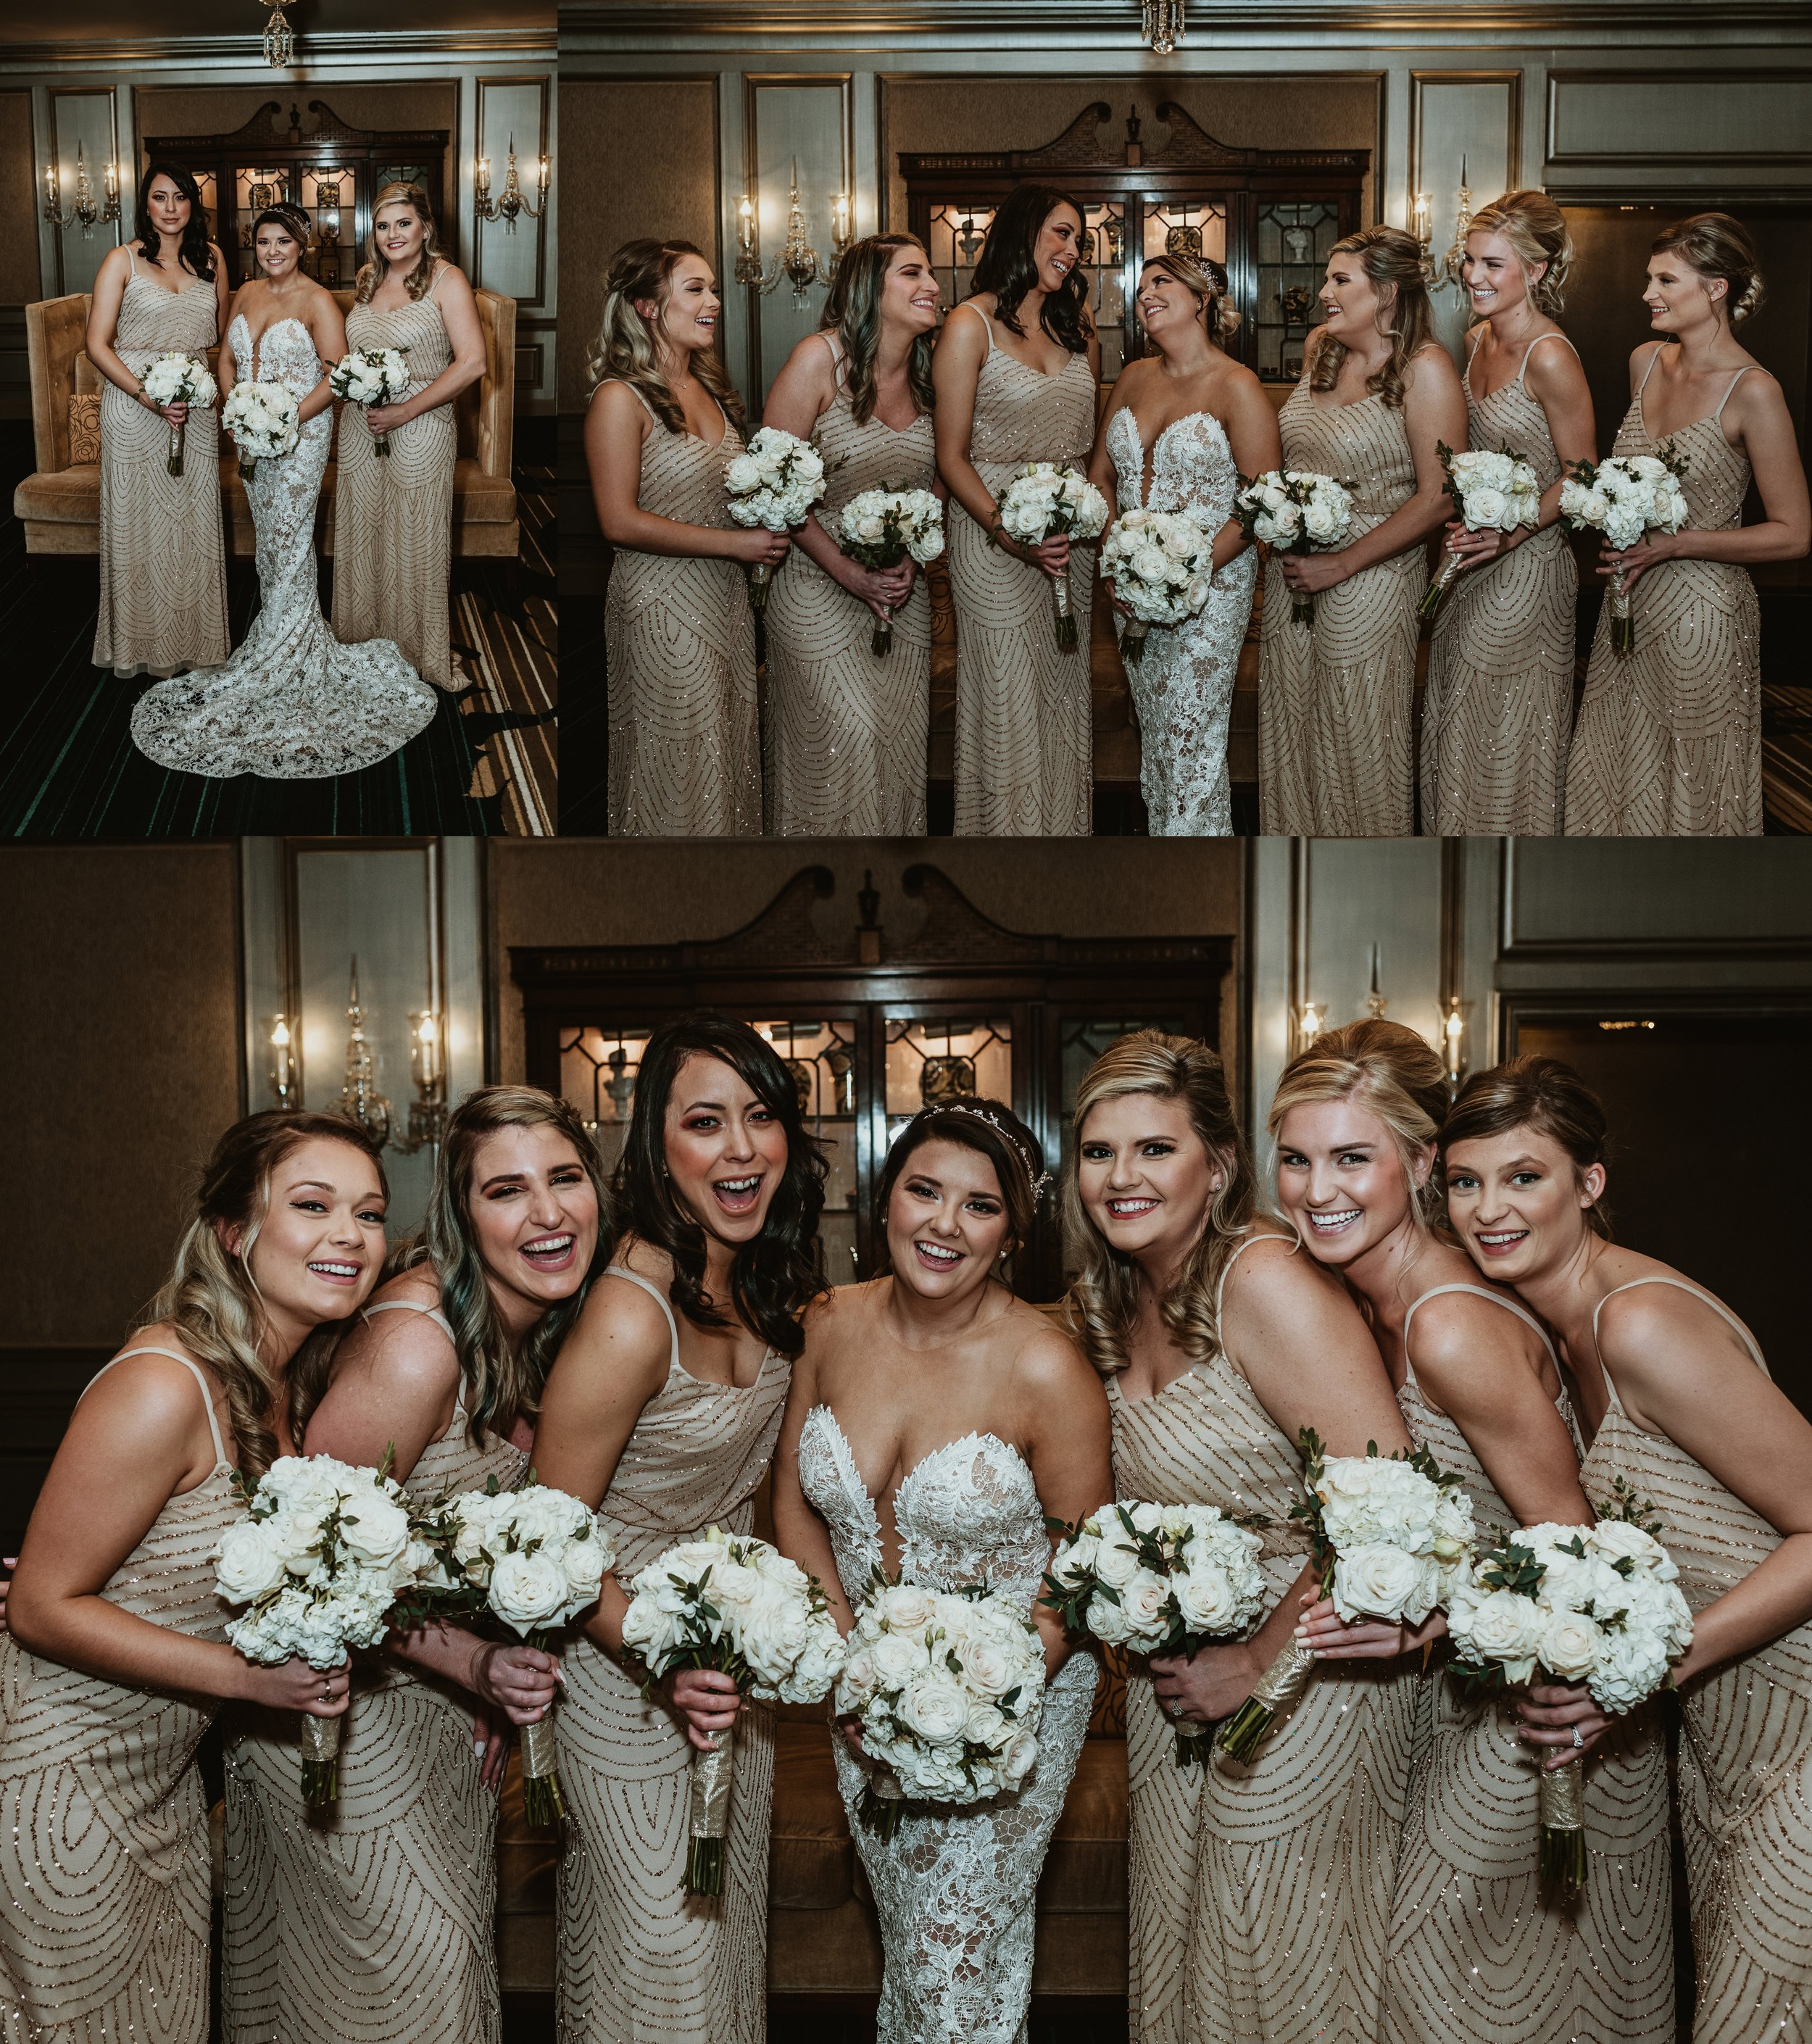 Classic Vintage Wedding | Ritz Carlton Atlanta, Georgia | Terry Farms Photography | Wedding Party Photo | Bridesmaid Photos